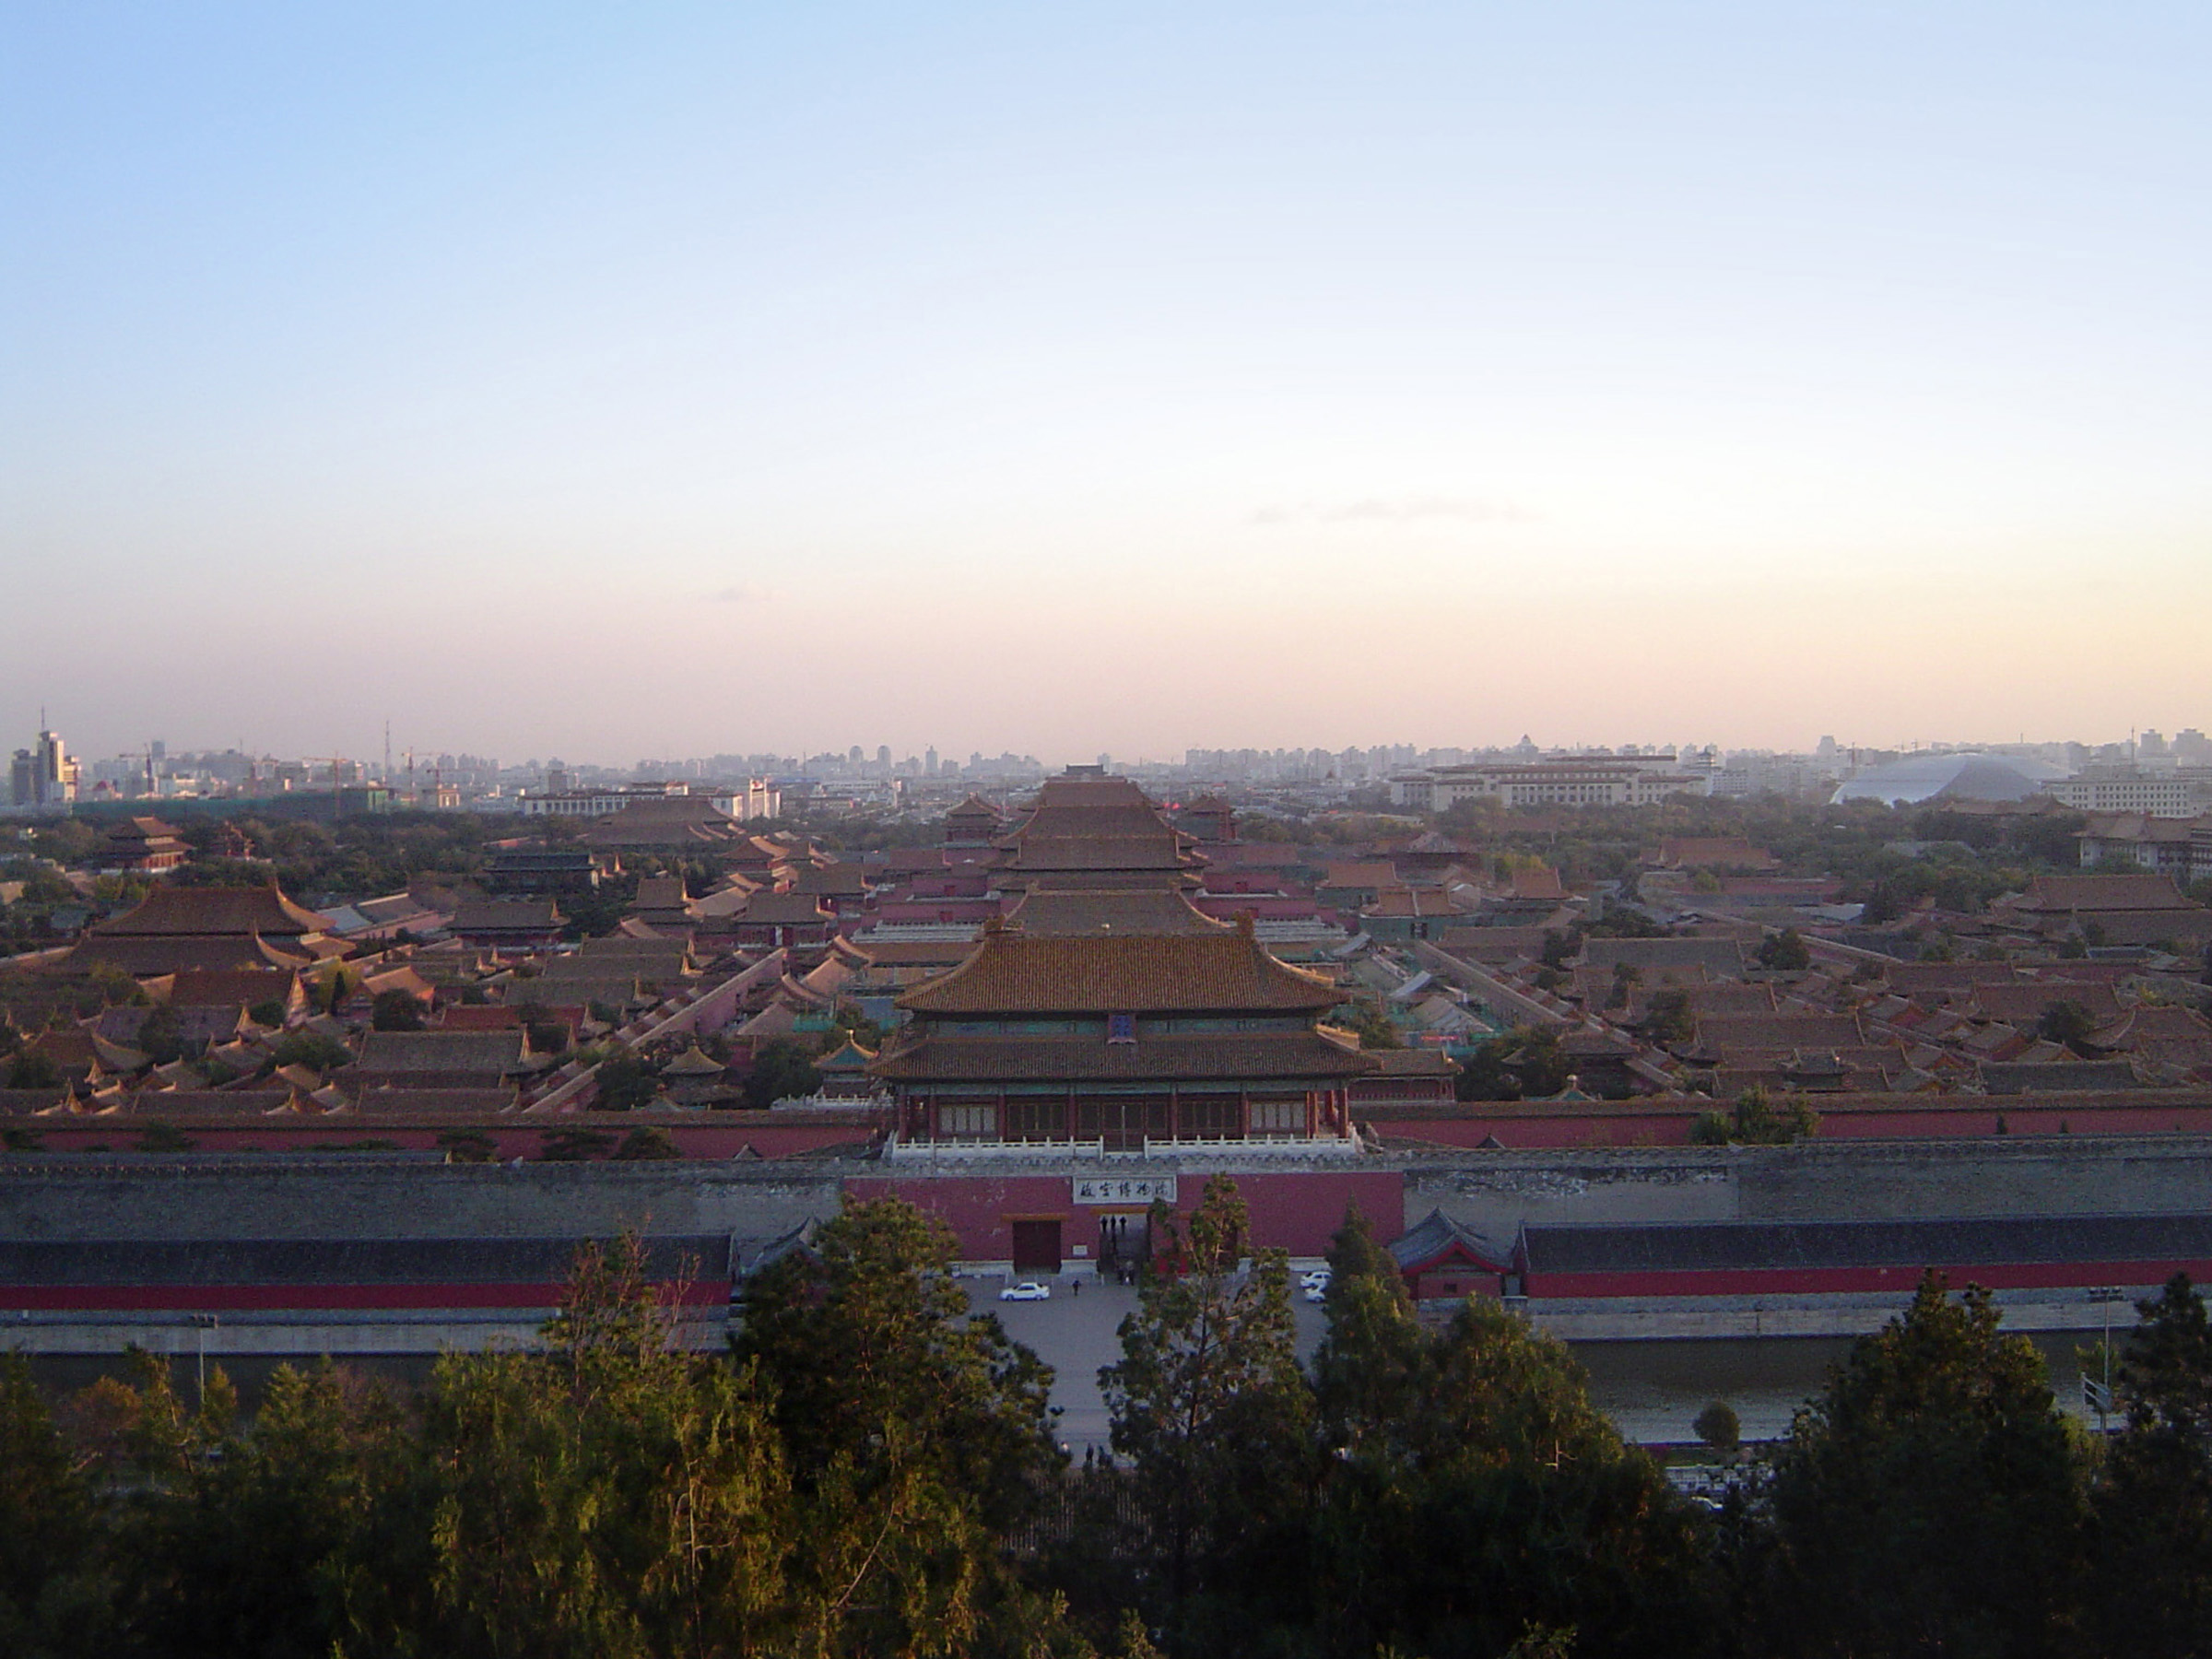 Aerial View of Famous Architectural Famous Forbidden City, a Chinese Imperial Palace, in Beijing China